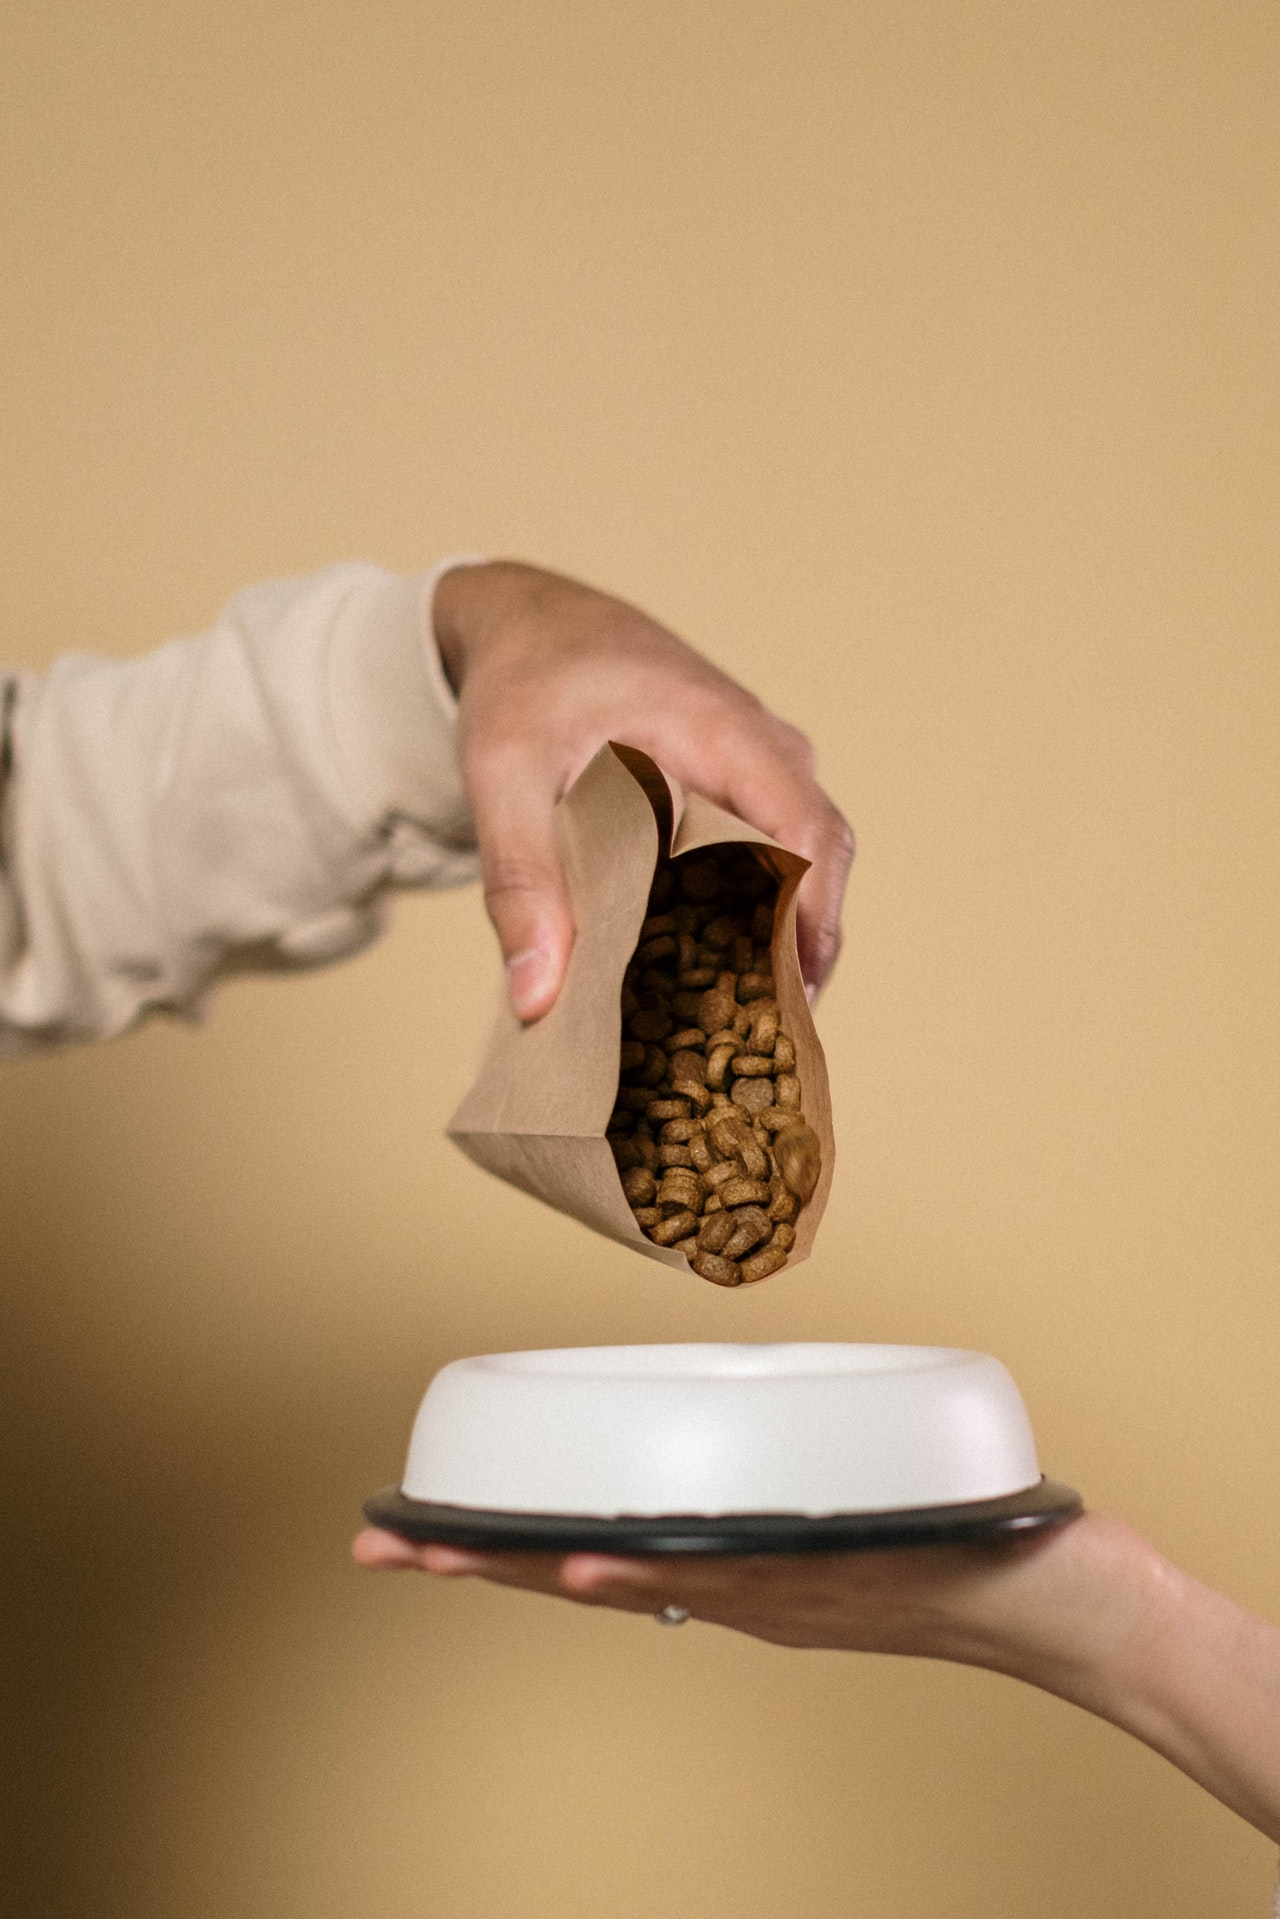 Pouring dog food into a bowl